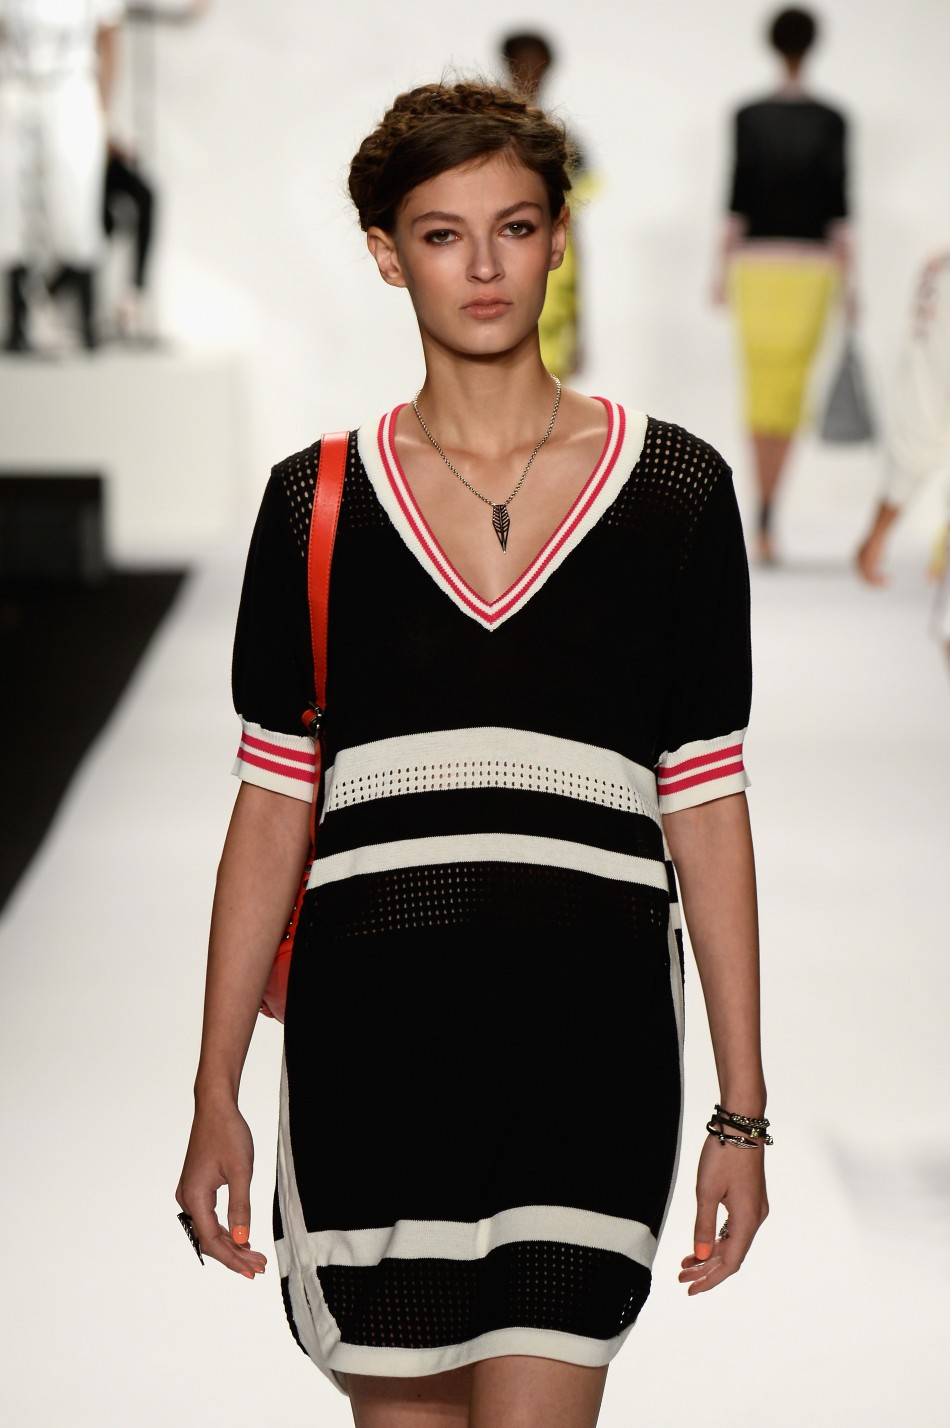 20580-rebecca-minkoff-spring-2014-new-york-fashion-week.jpg